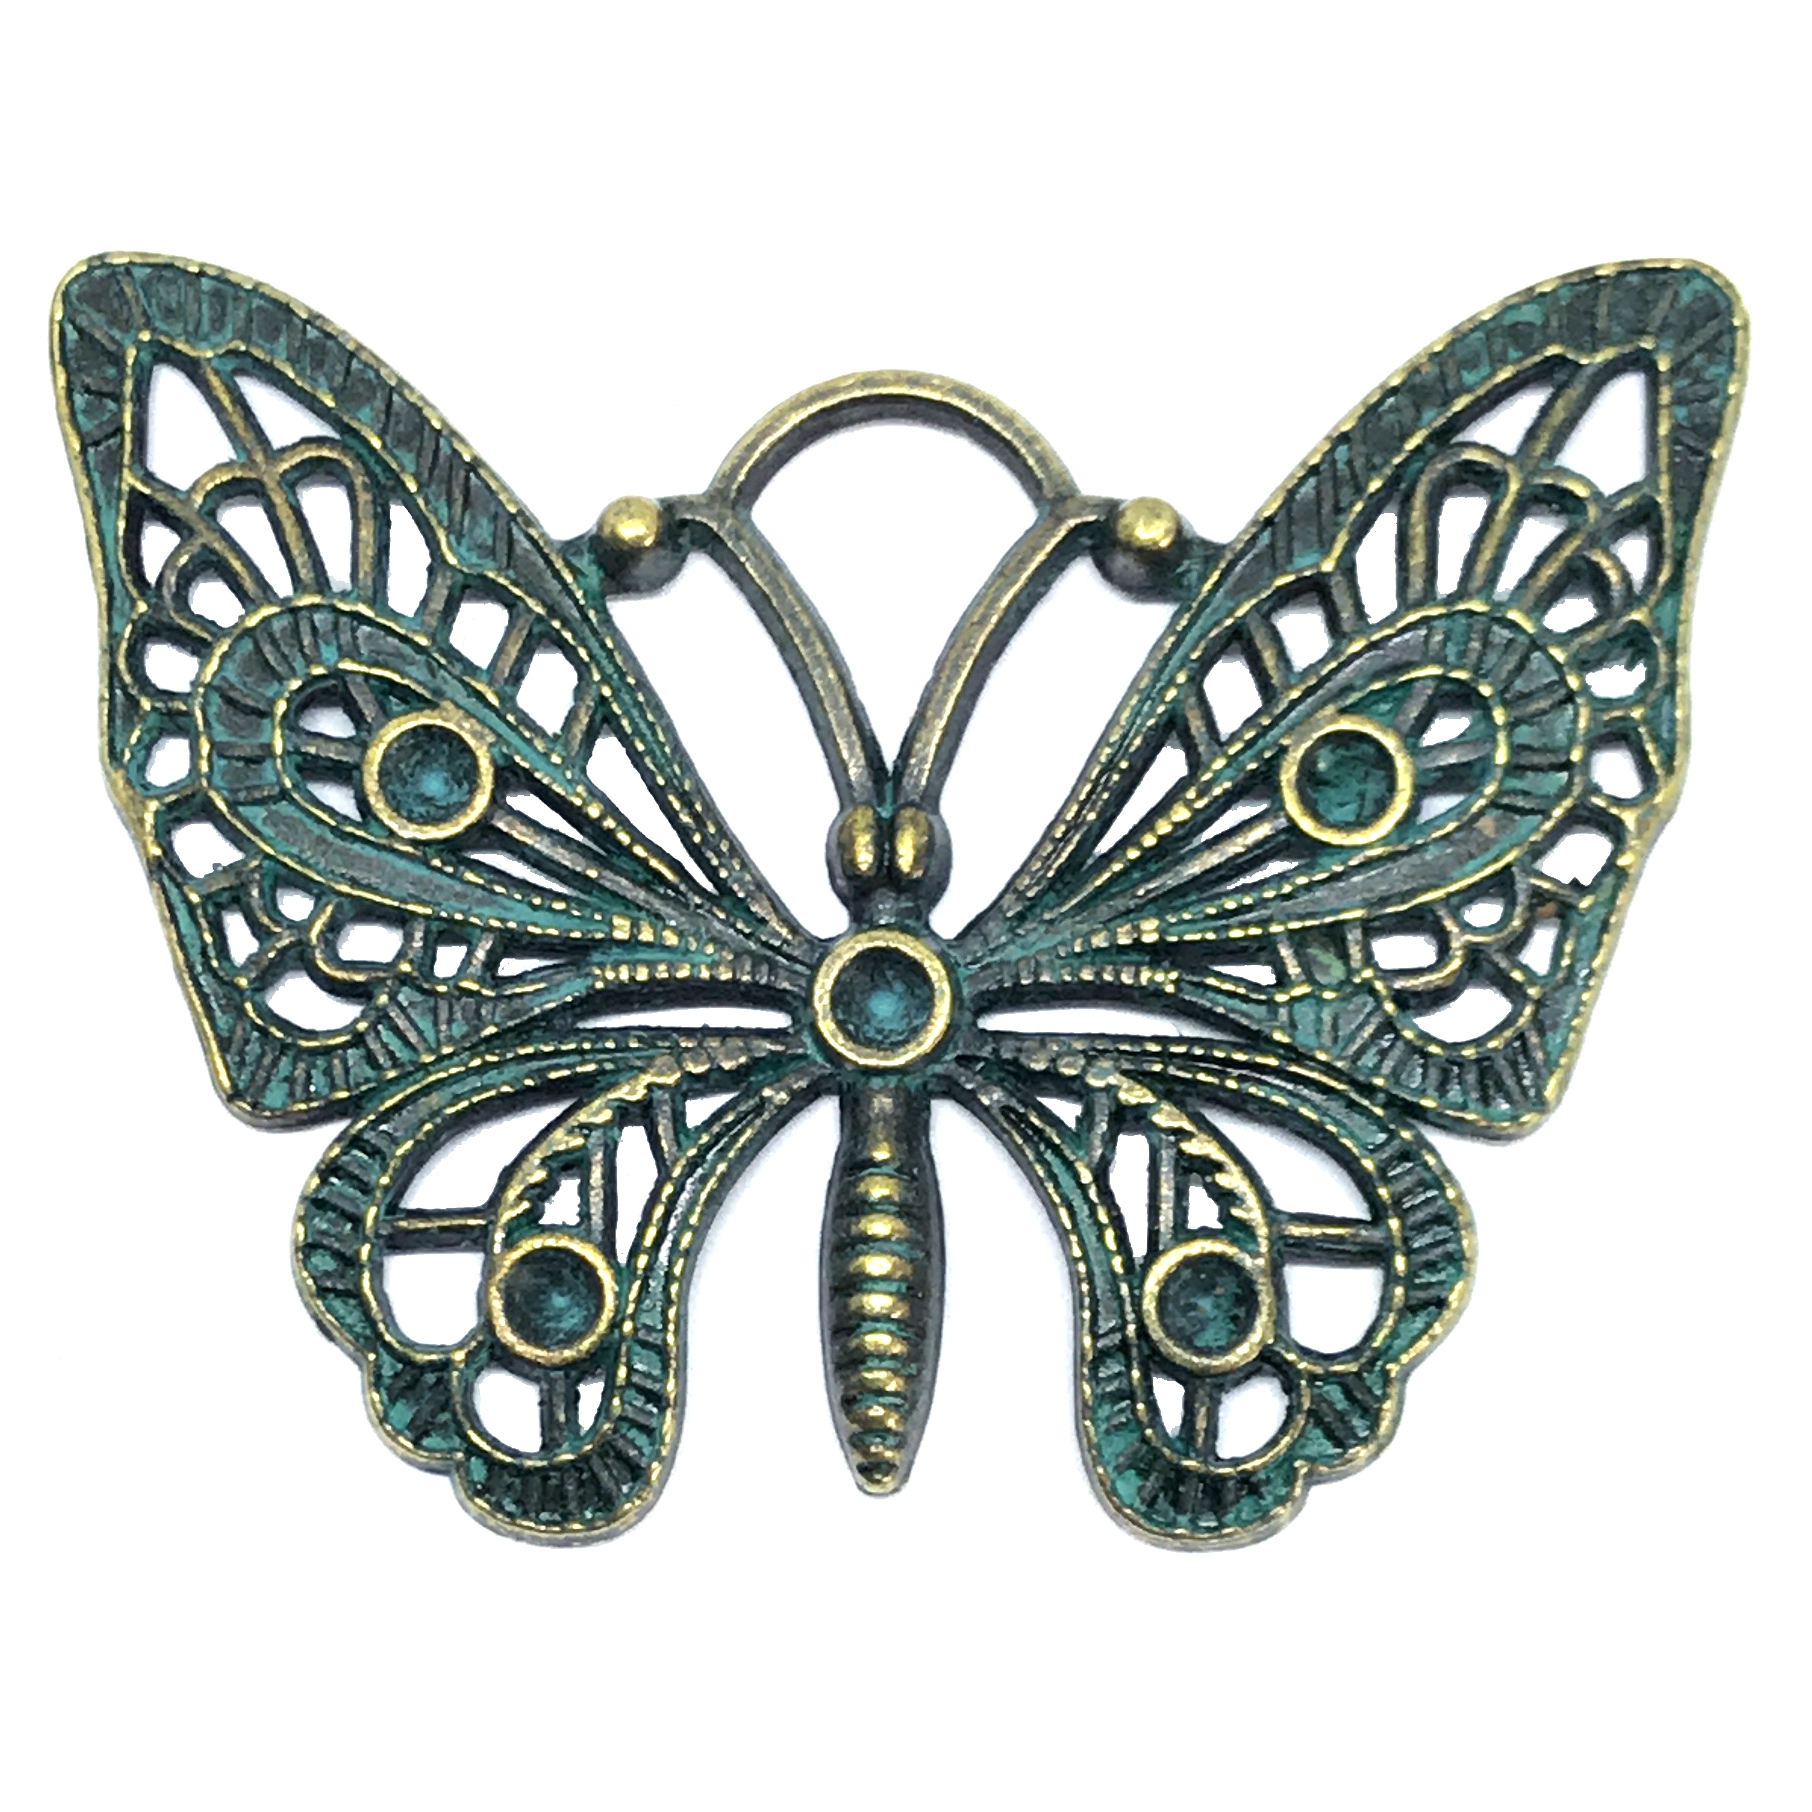 filigree butterfly, bronze, aqua patina, bugs, 36 x 48mm, butterfly jewelry, jewelry making, vintage supplies, jewelry supplies, jewelry findings, B'sue Boutiques, animal, stamping, animal stamping, 01208, pendant, insects